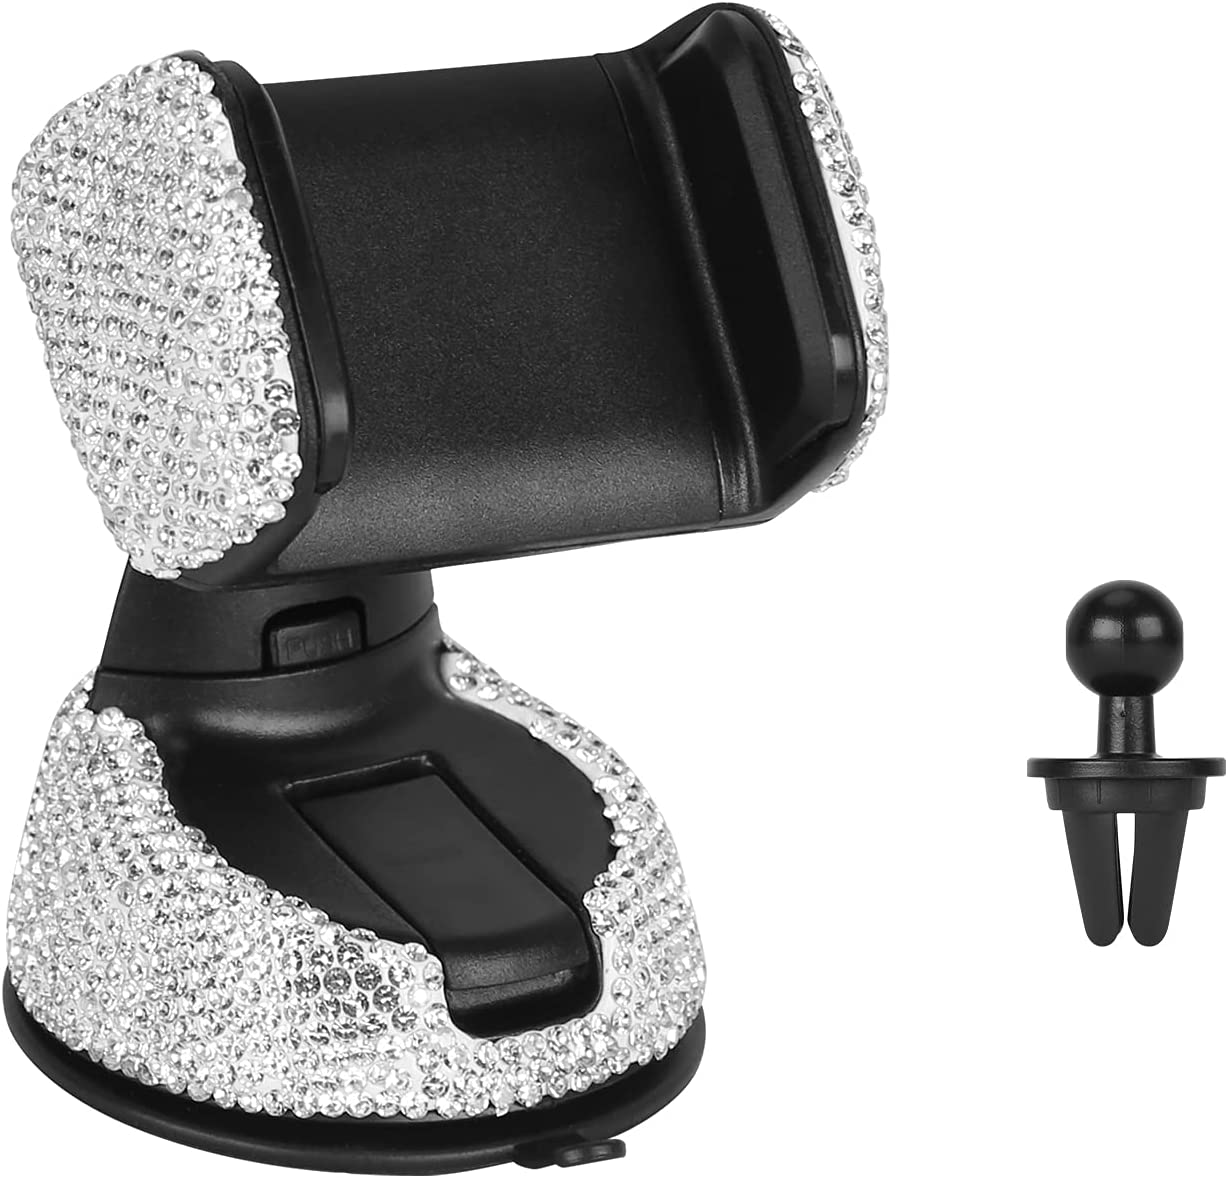 Bling Car Mount Stand Phone Holder, Crystal Rhinestone Universal Cell Phone Holder 360° Adjustable Auto Phone Mount Car Accessories for Dashboard Windshield Air Vent (White)